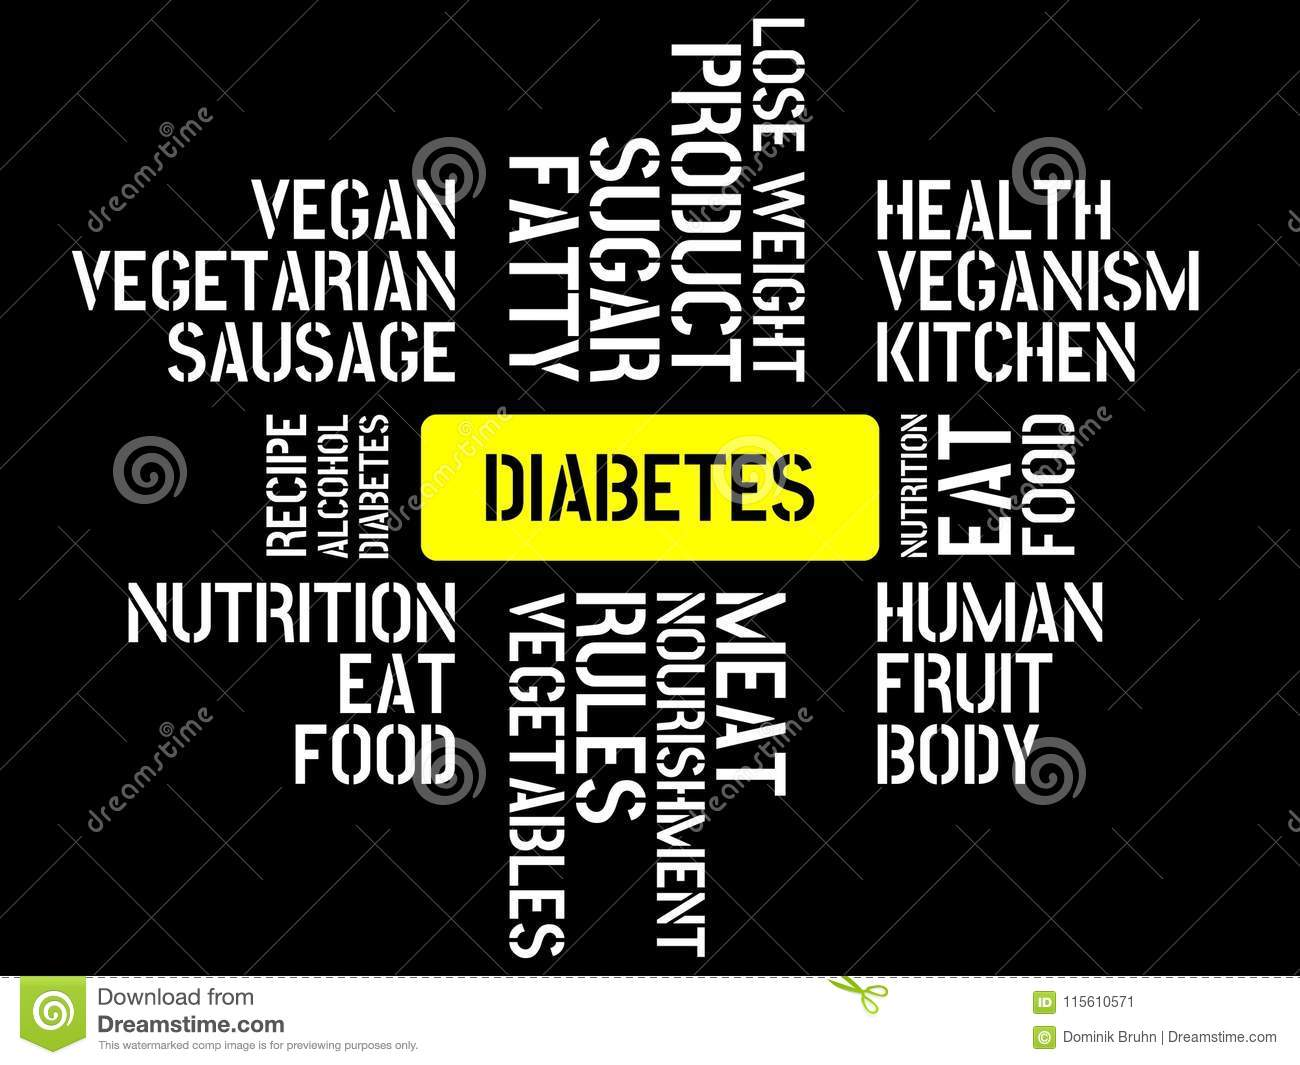 diabetes image with words associated with the topic nutrition